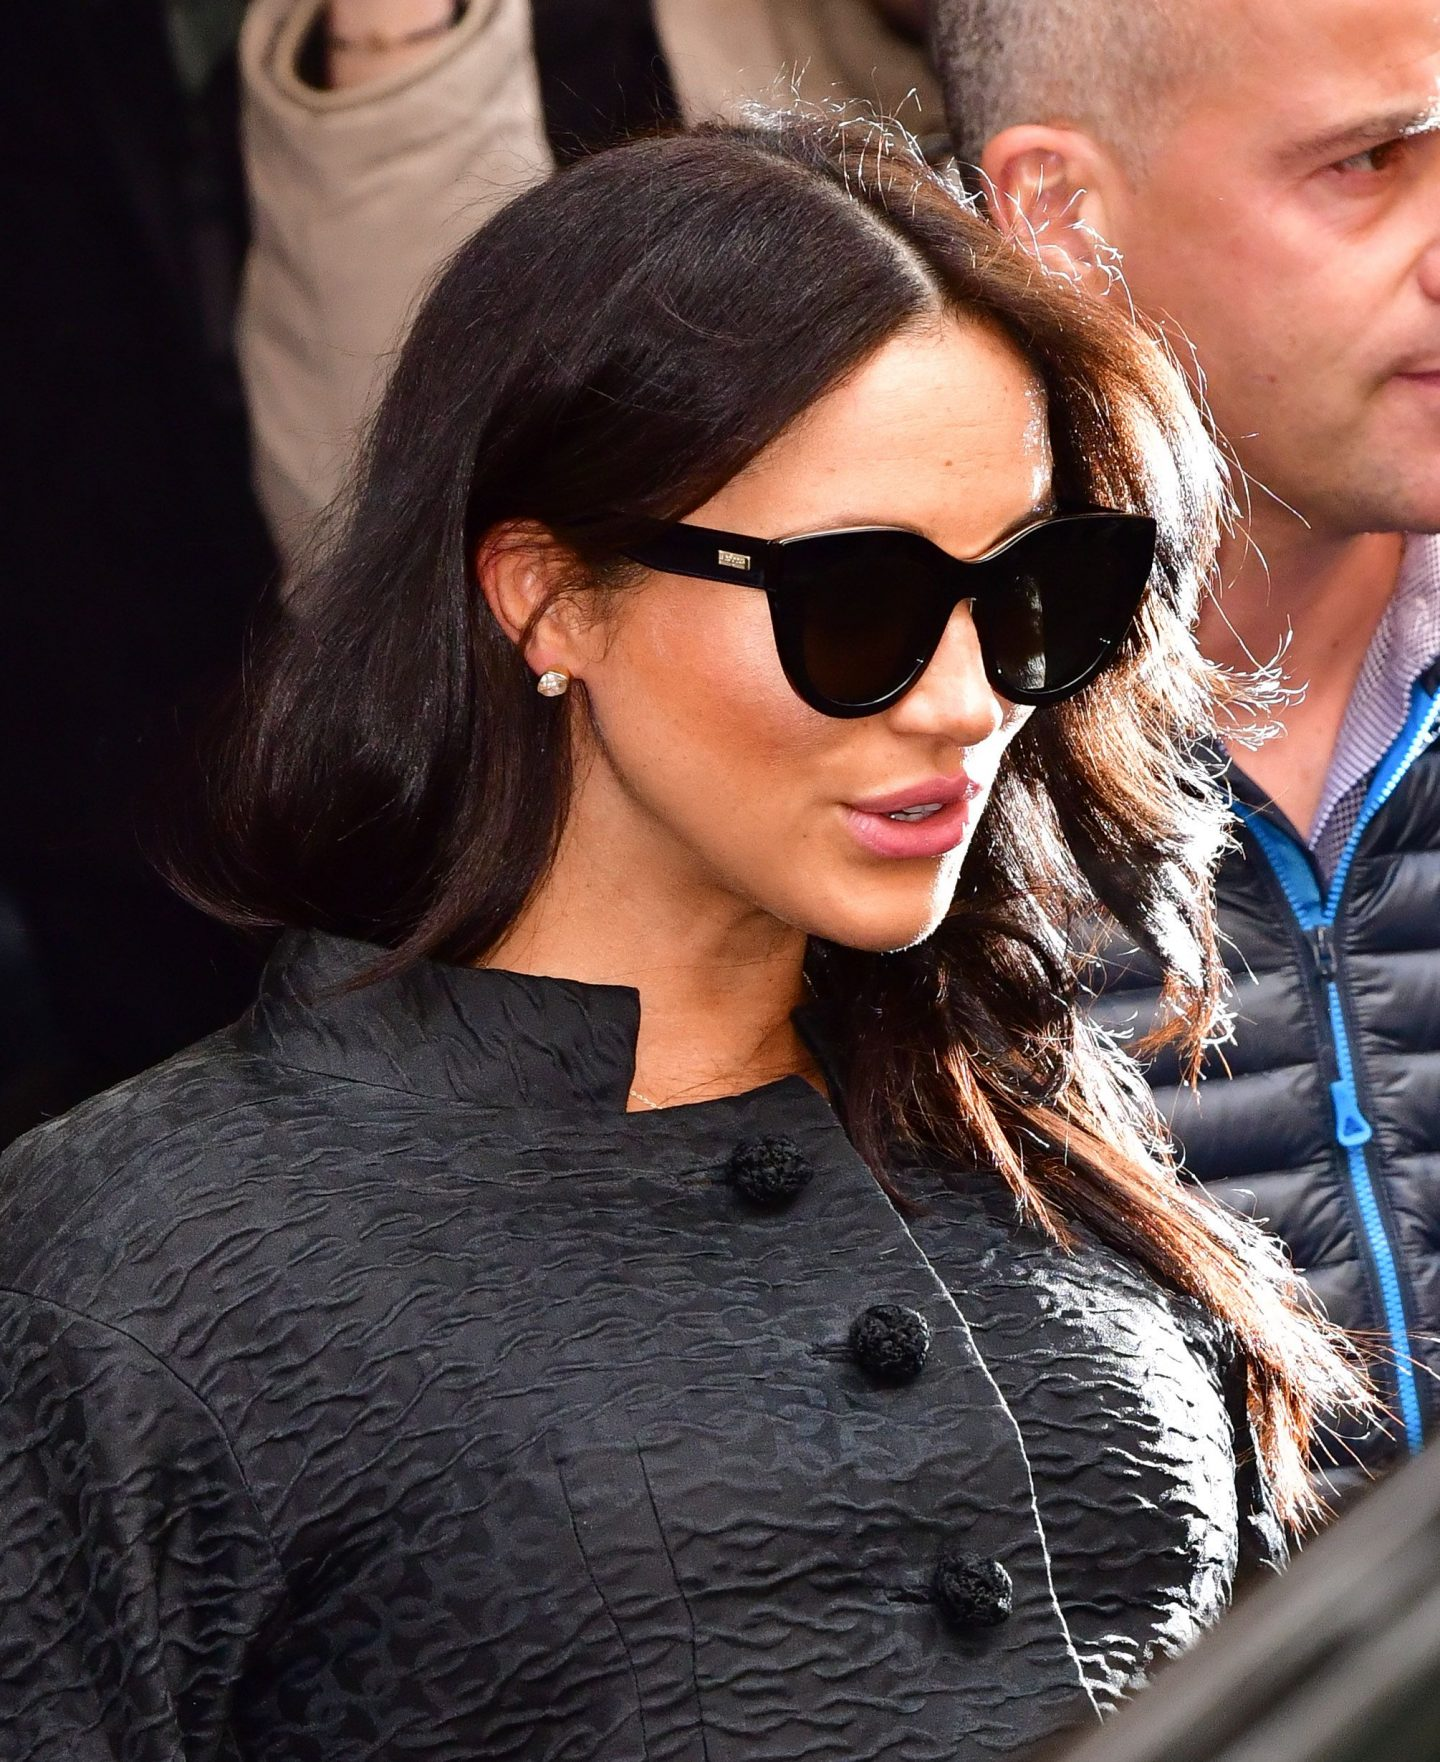 Budget Friendly Sunglasses worn by Meghan Markle.